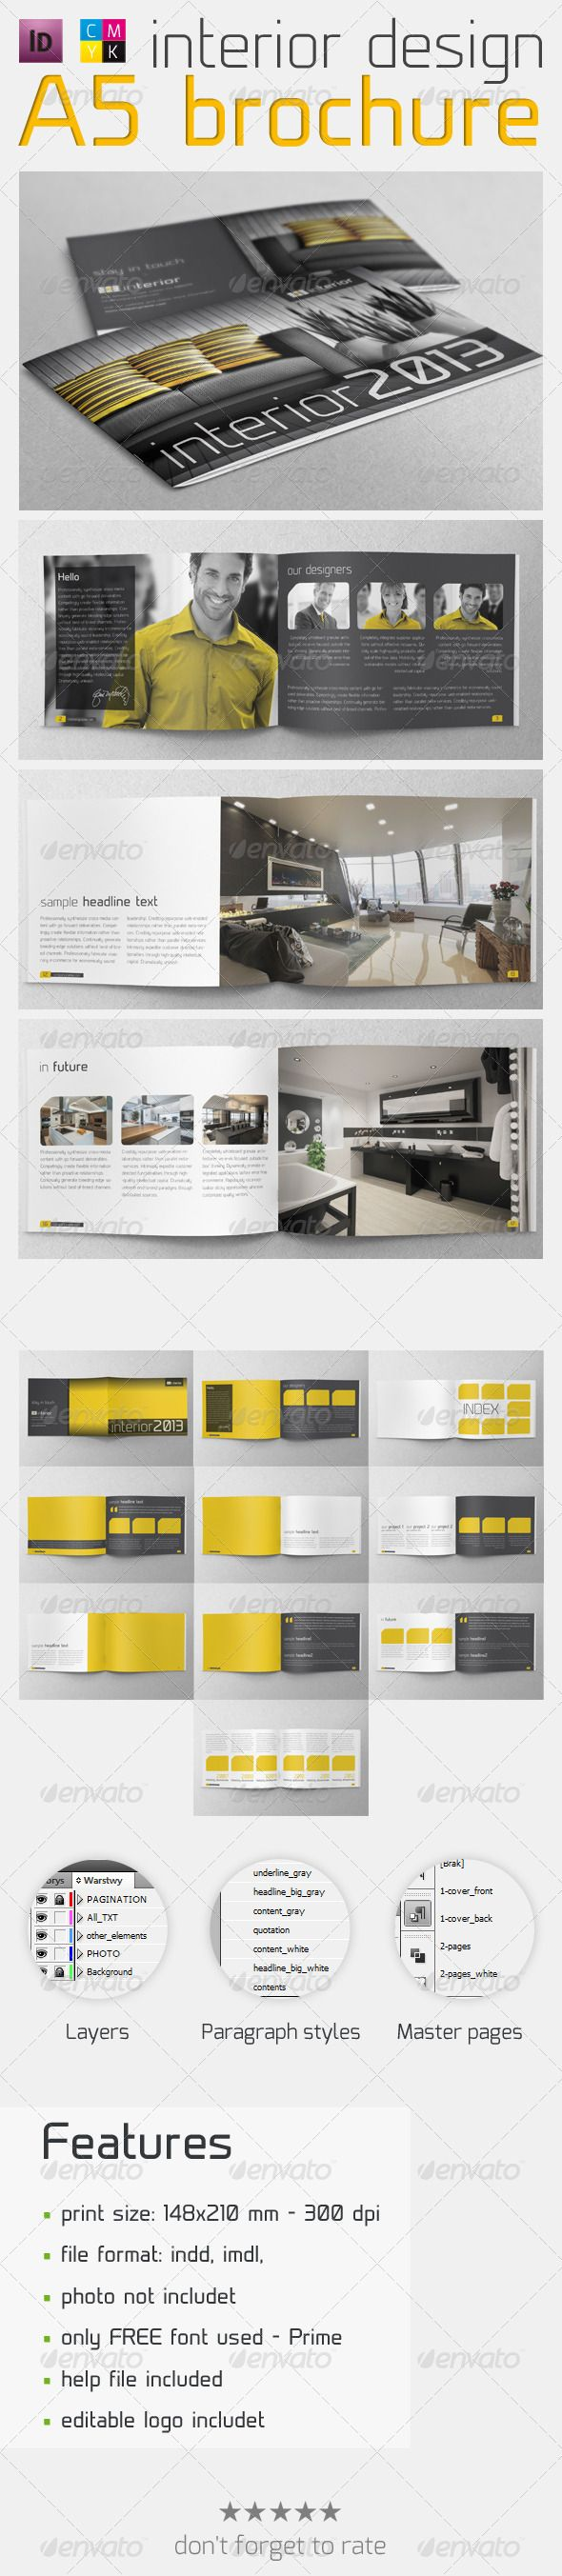 interior design brochure pinterest brochures interiors and layouts